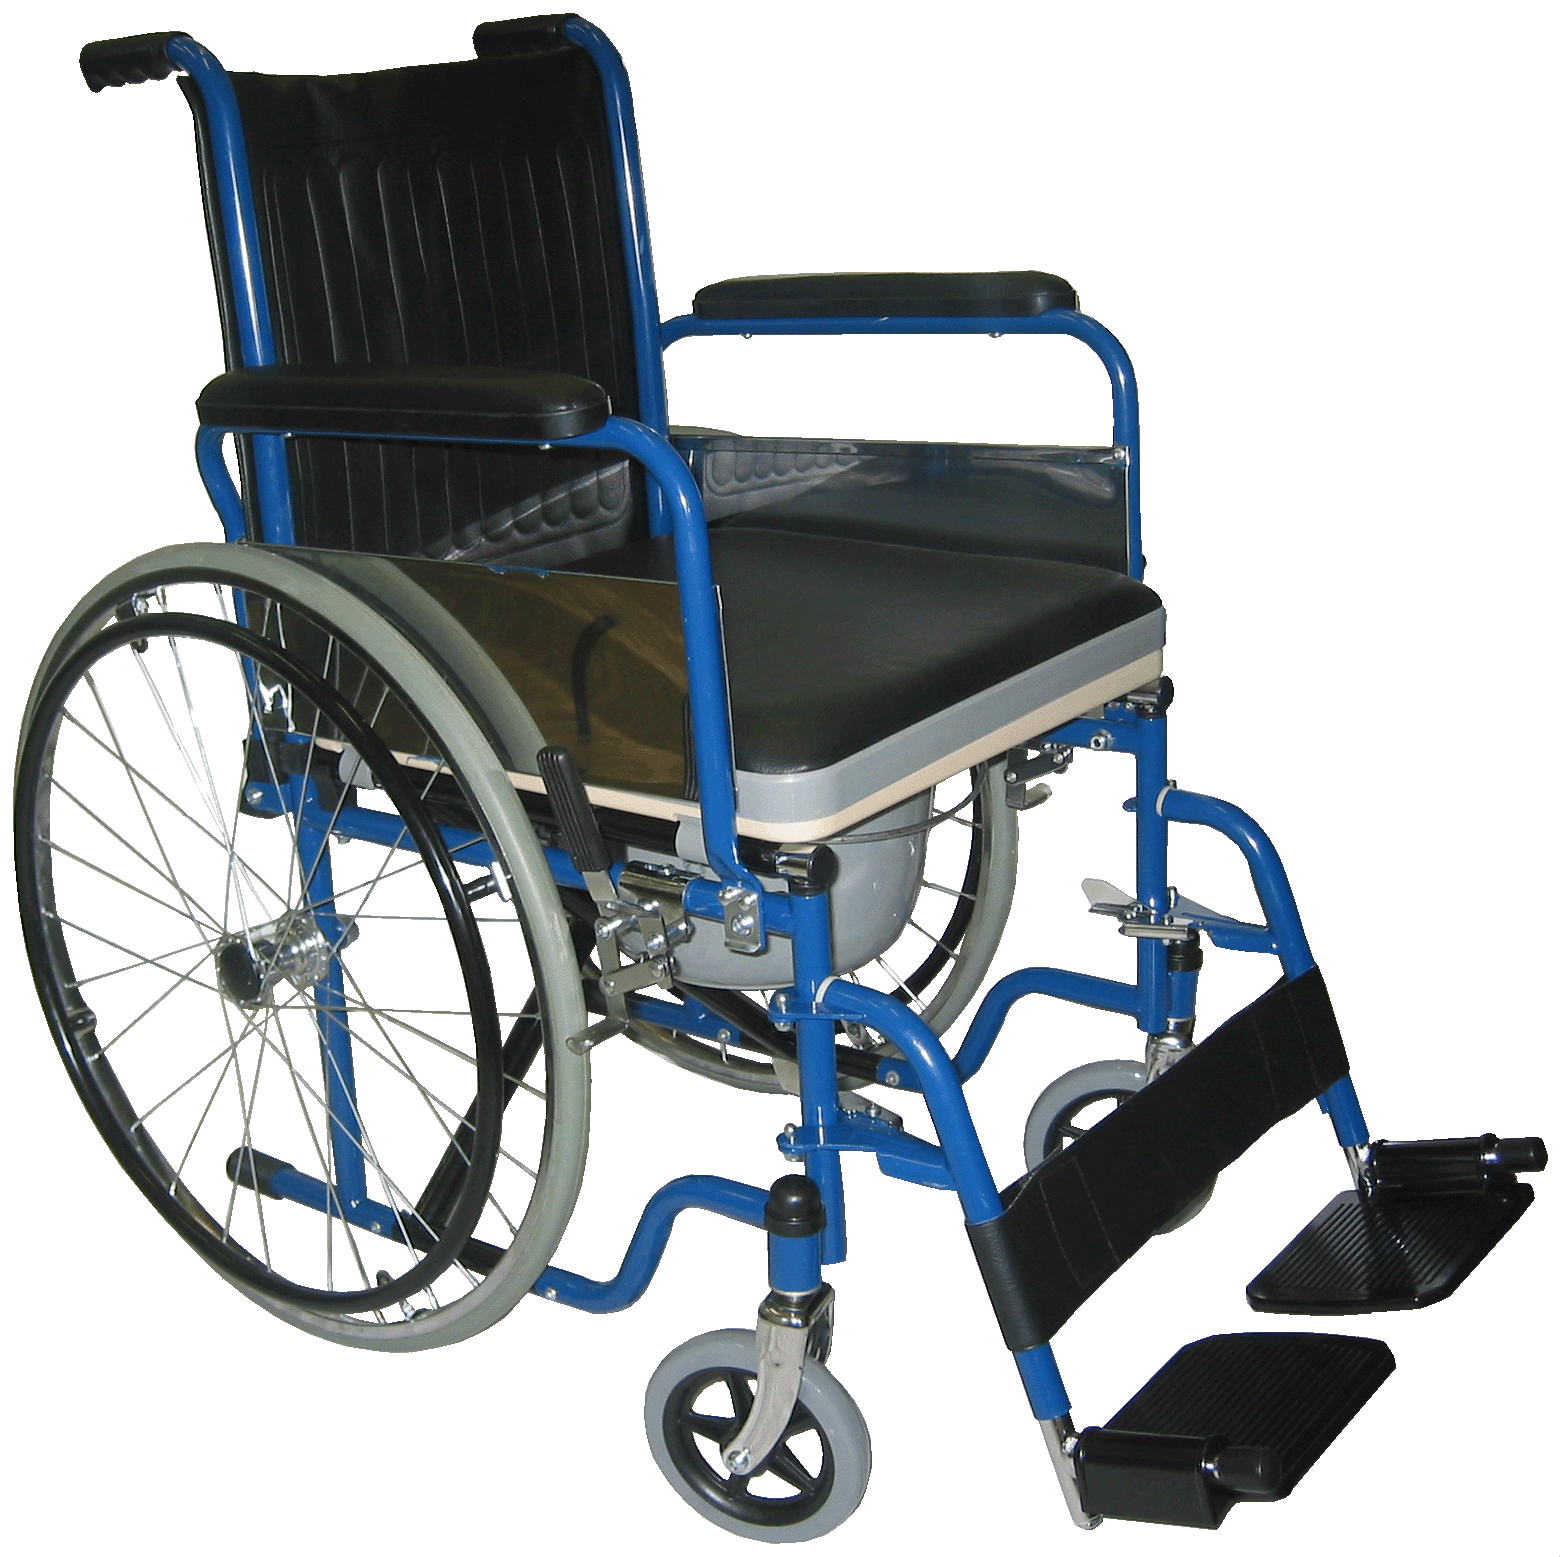 High Resolution Wheelchair Png Clipart image #40986